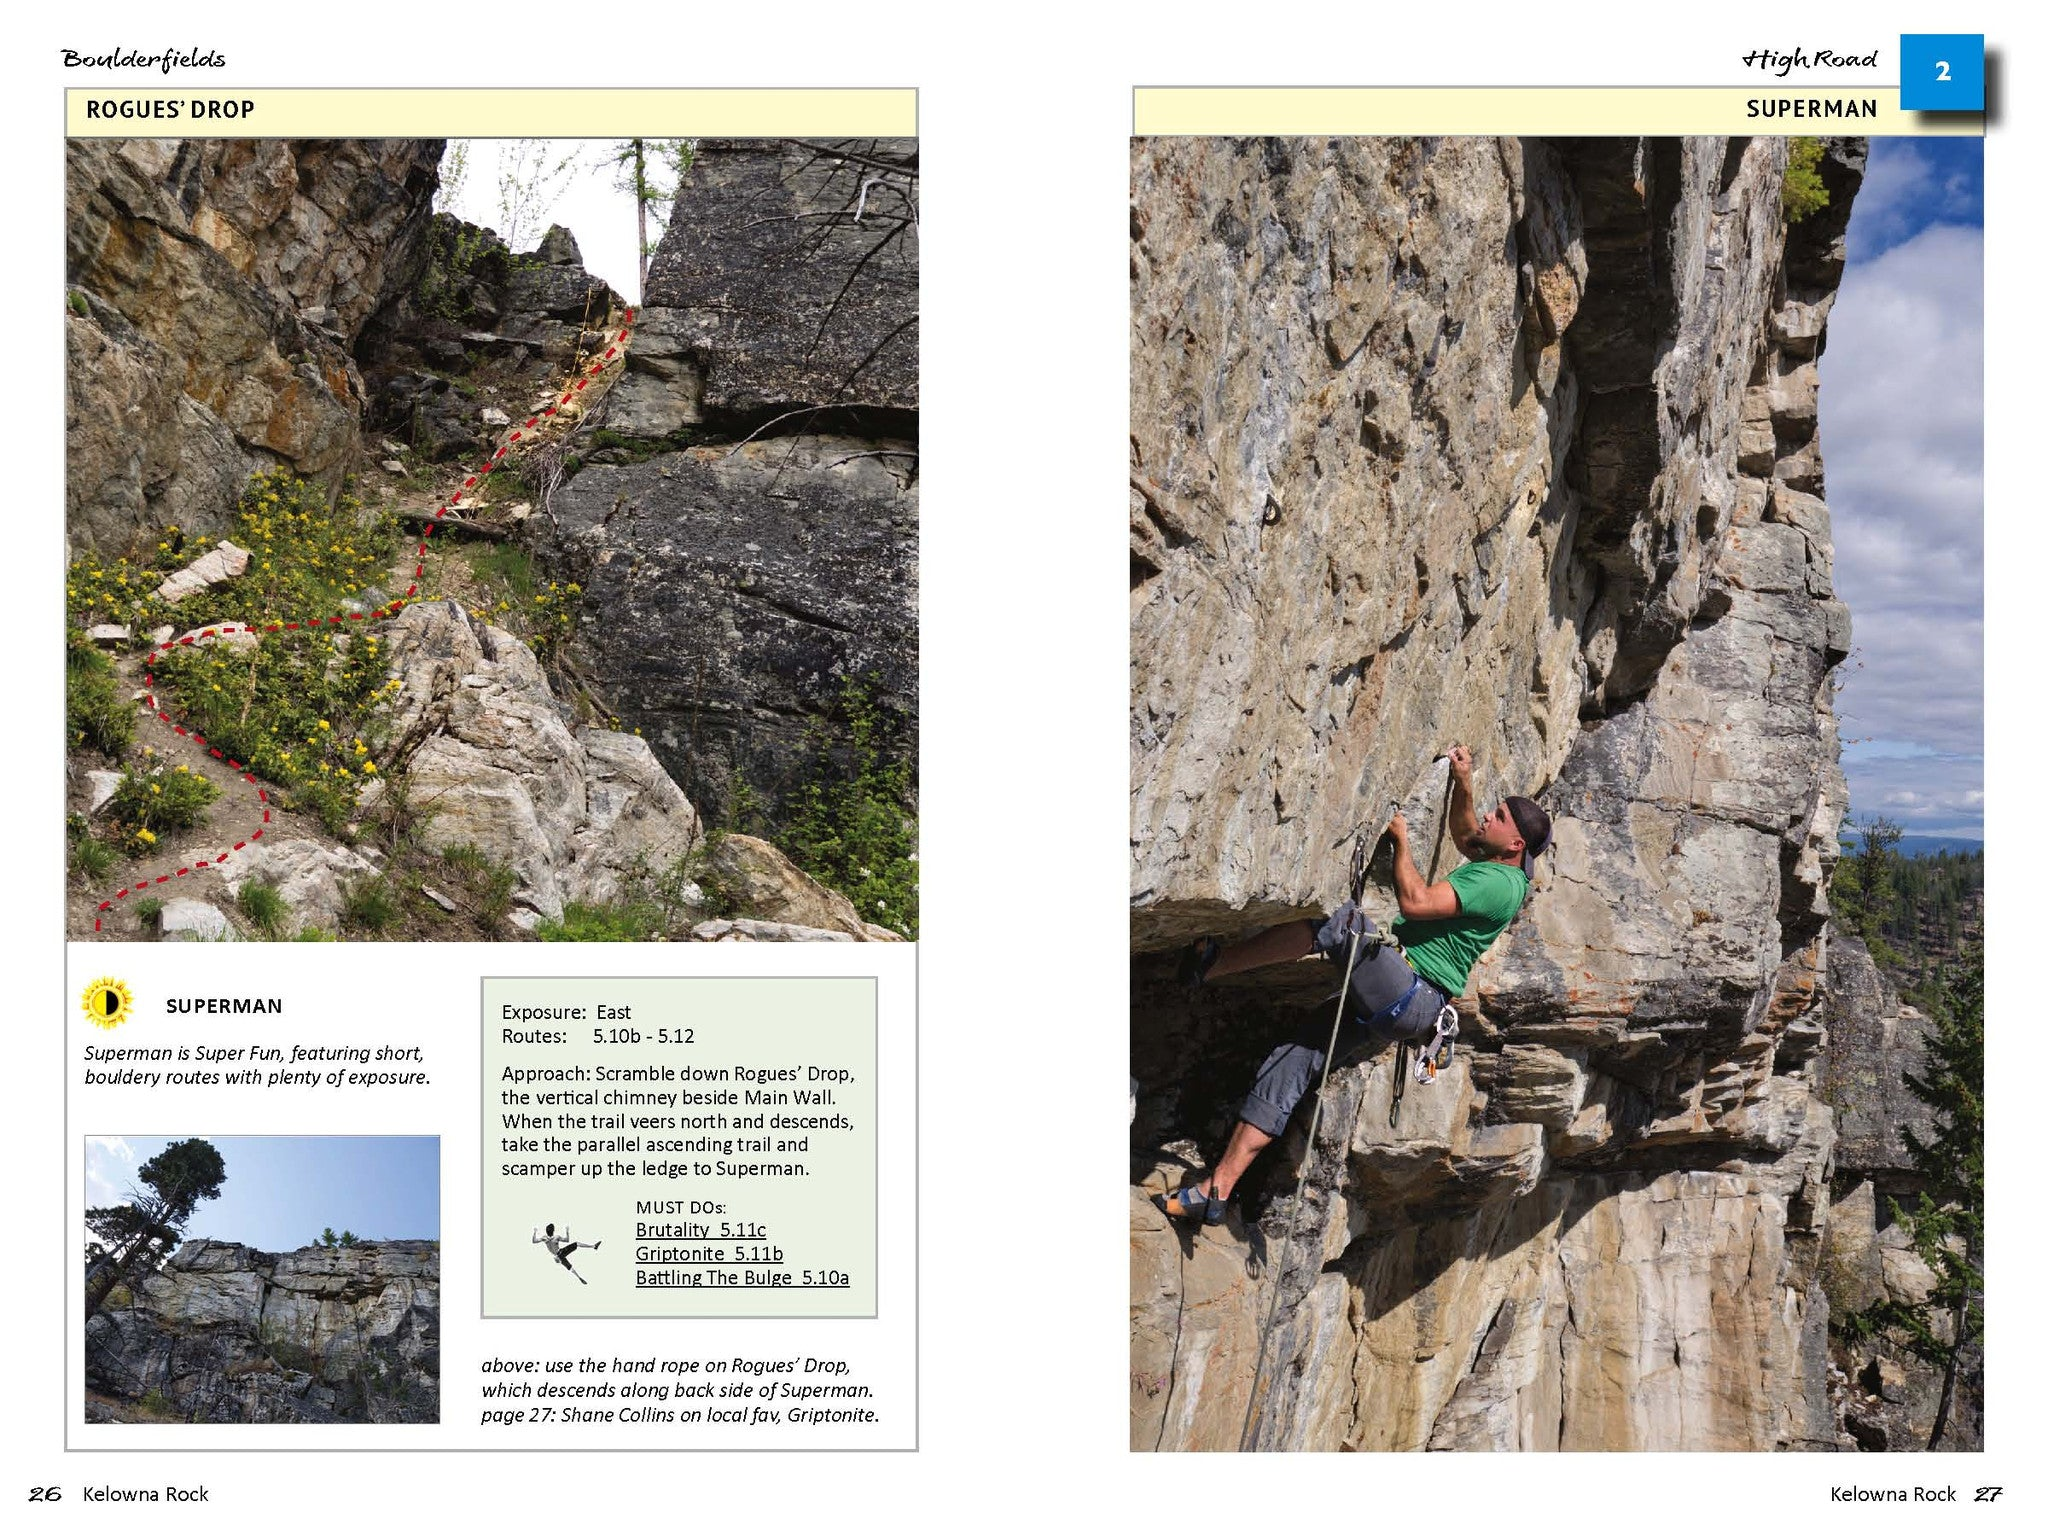 Superman Wall info, Boulderfields, Kelowna Rock Climbing guidebook